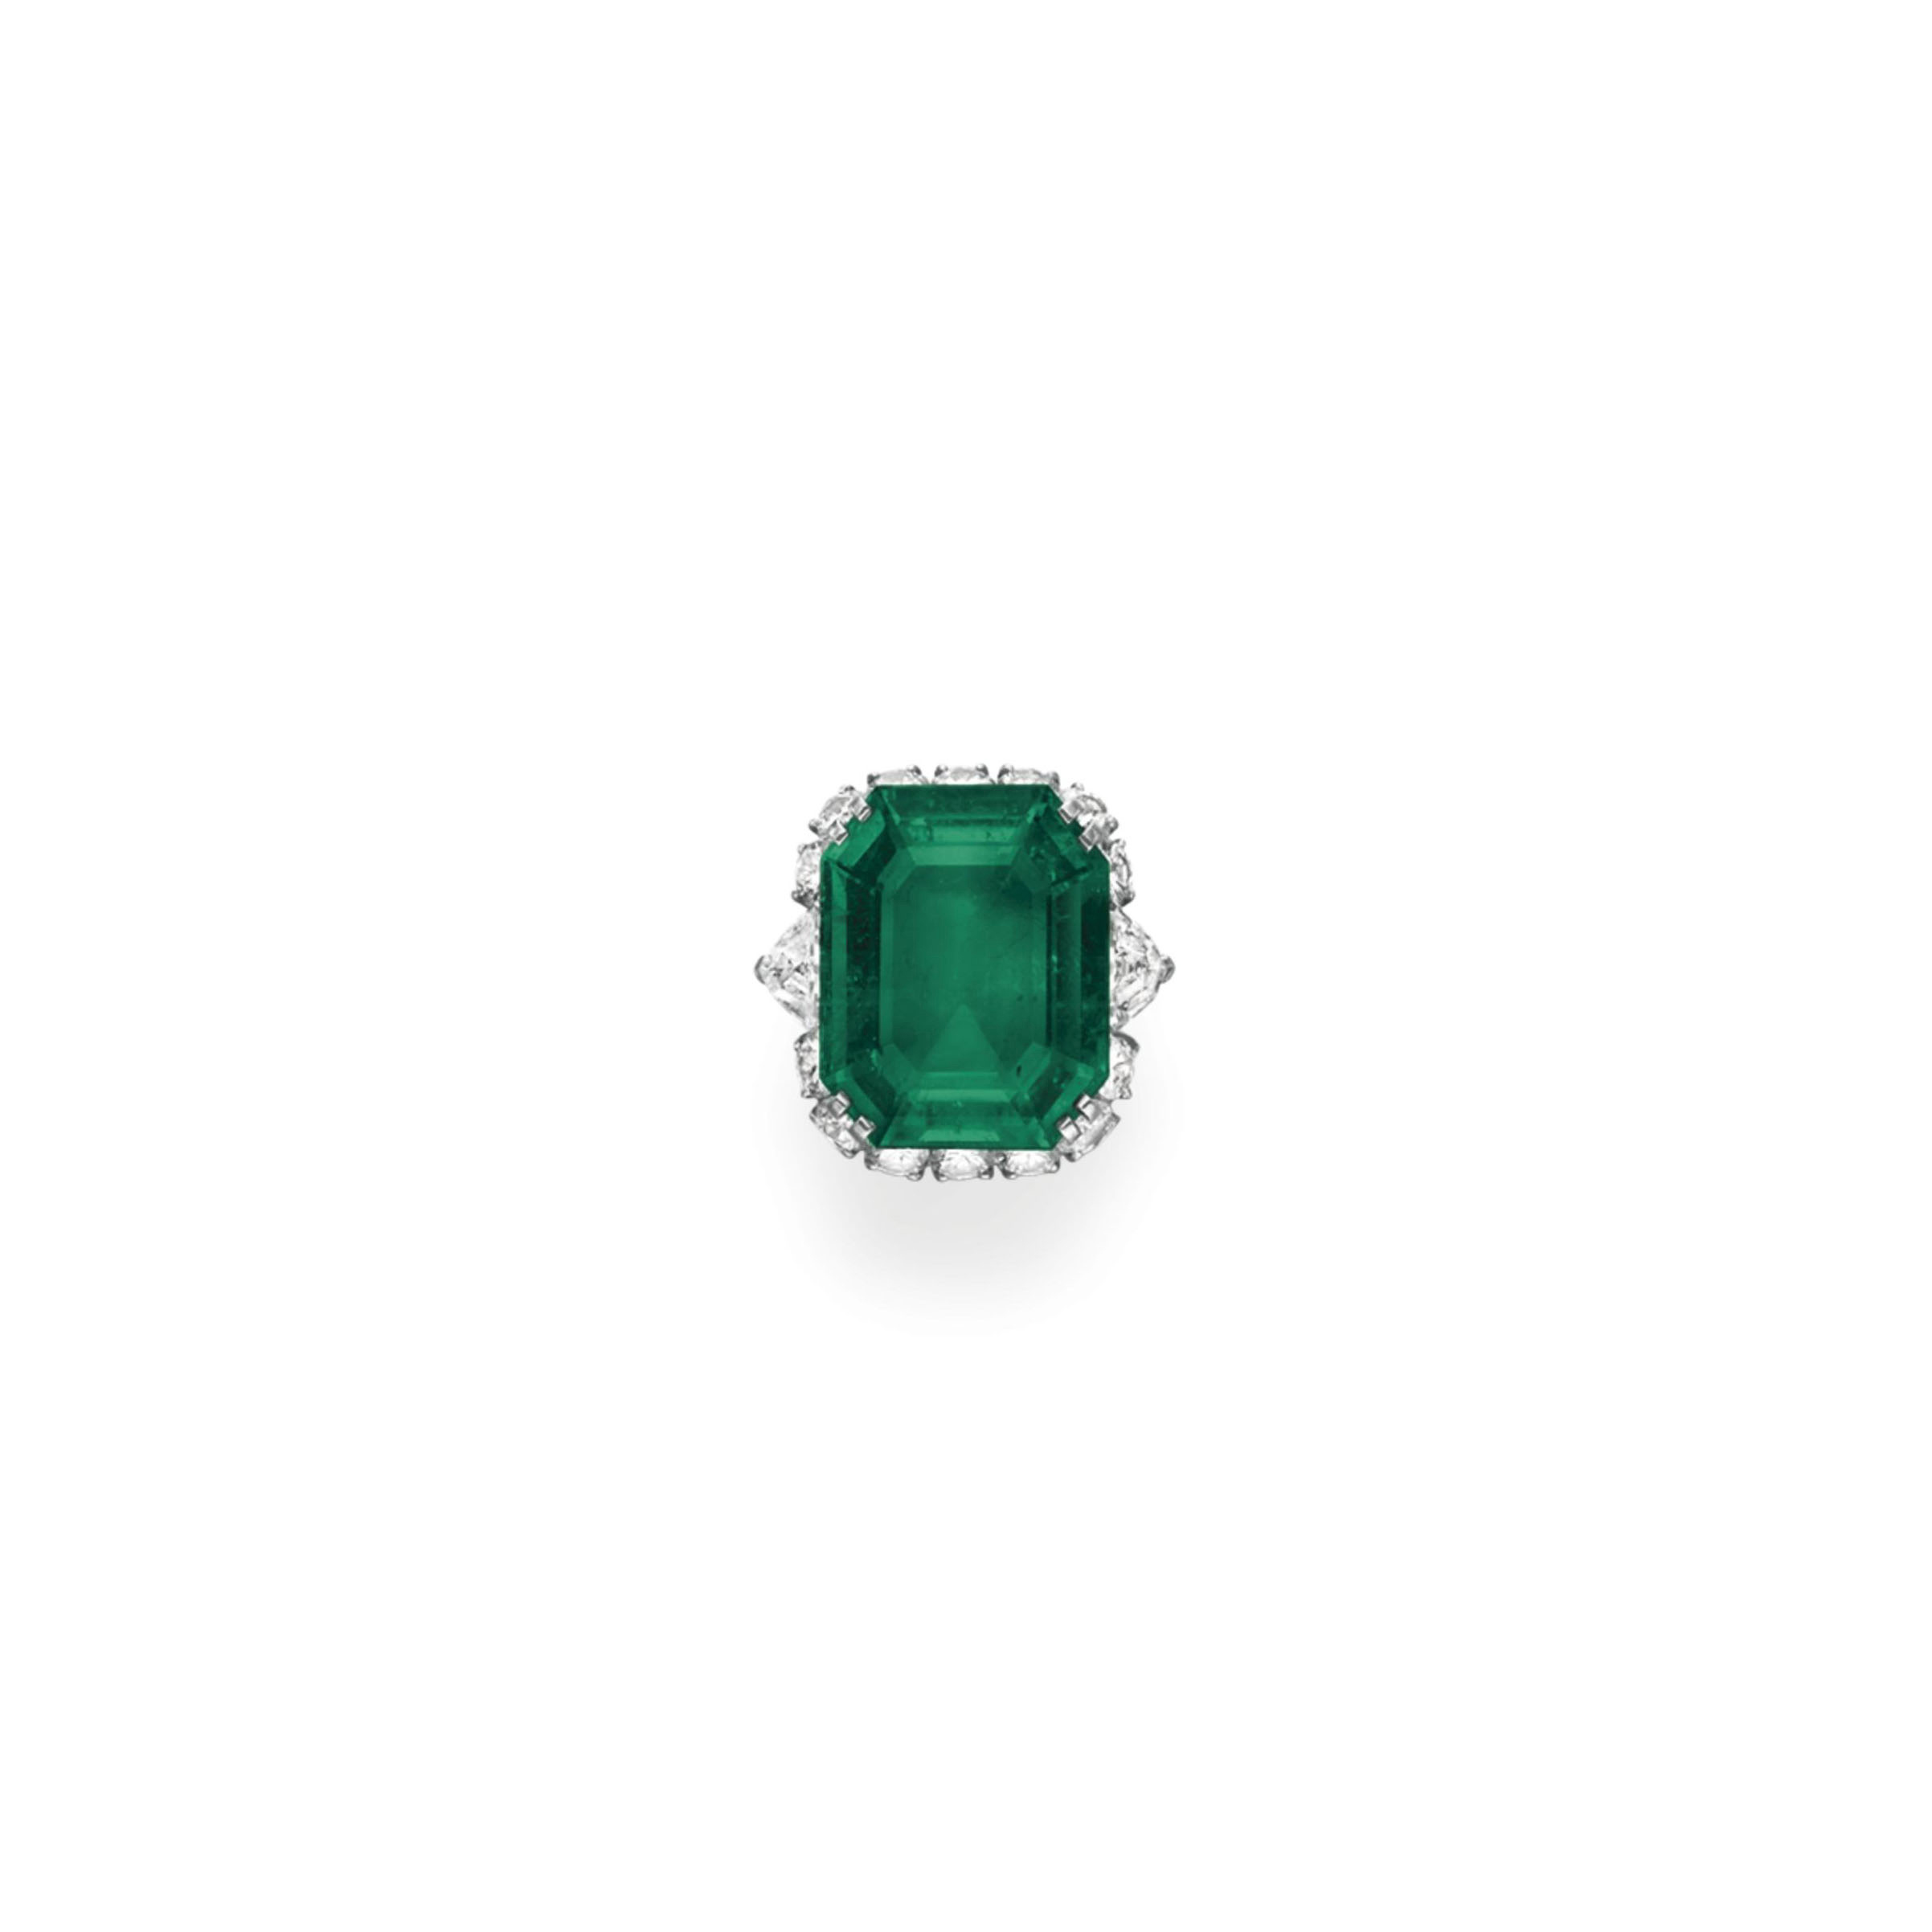 AN EMERALD AND DIAMOND RING, BY BVLGARI